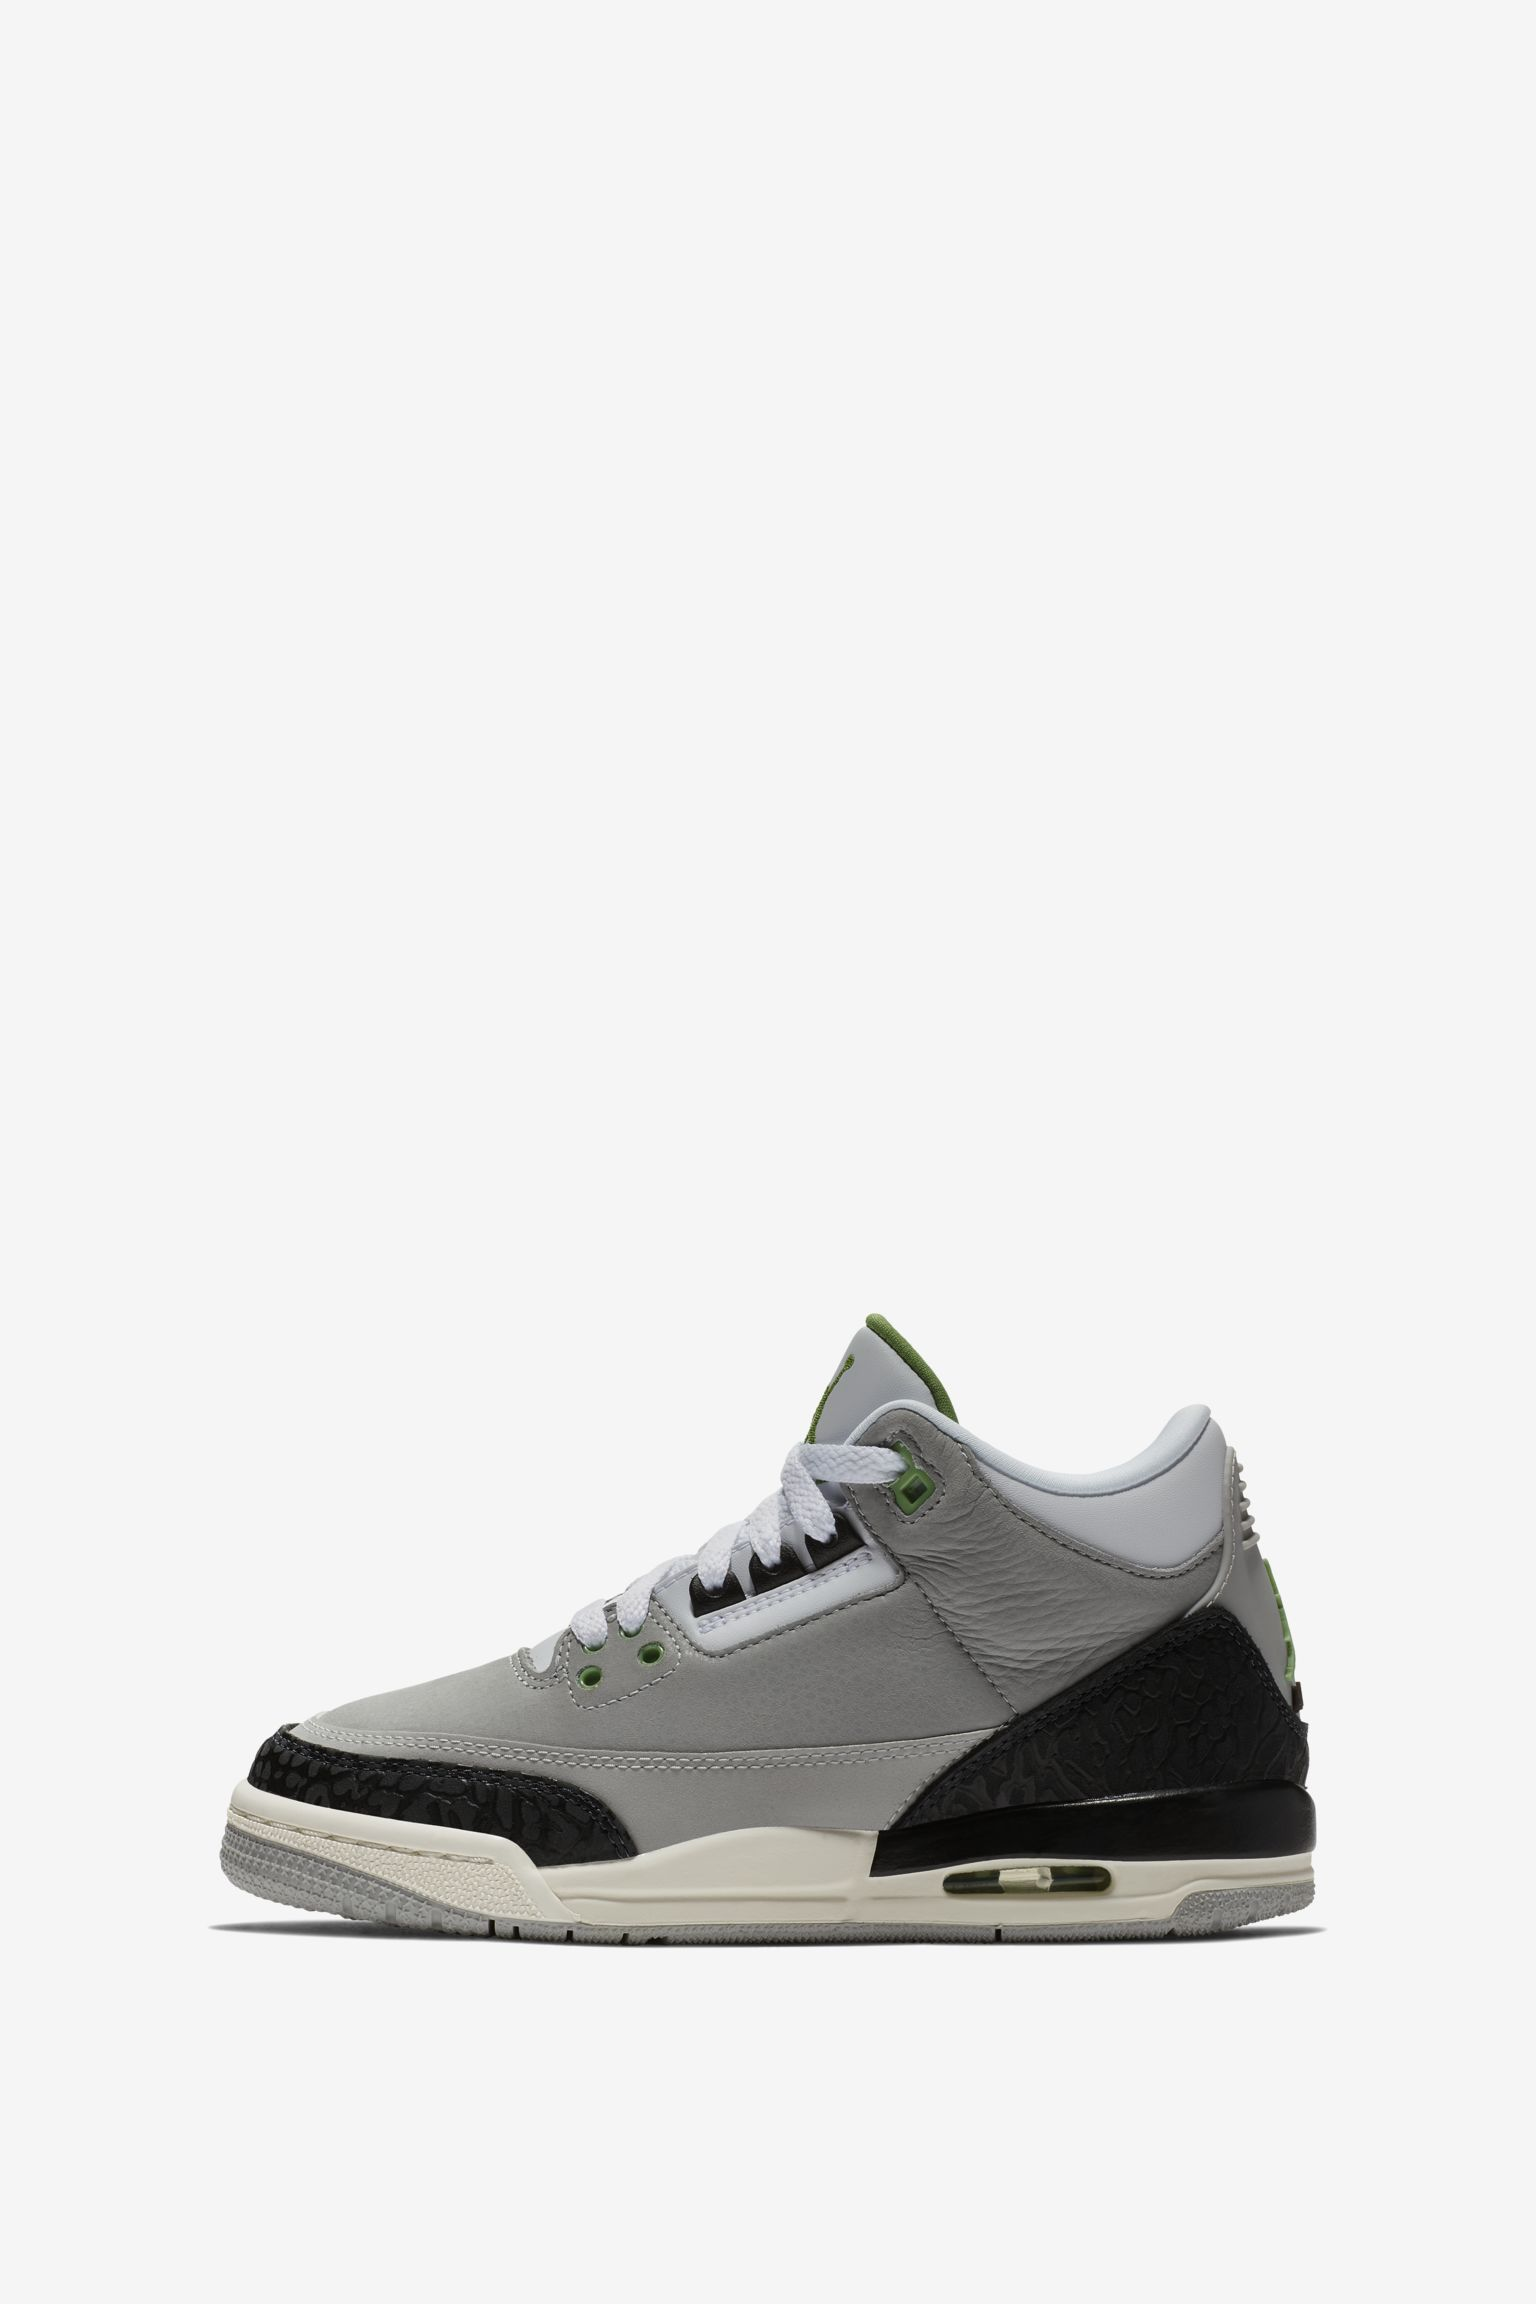 Air Jordan 3 Air Trainer 1 'Light Smoke Grey & Chlorophyll' Release Date